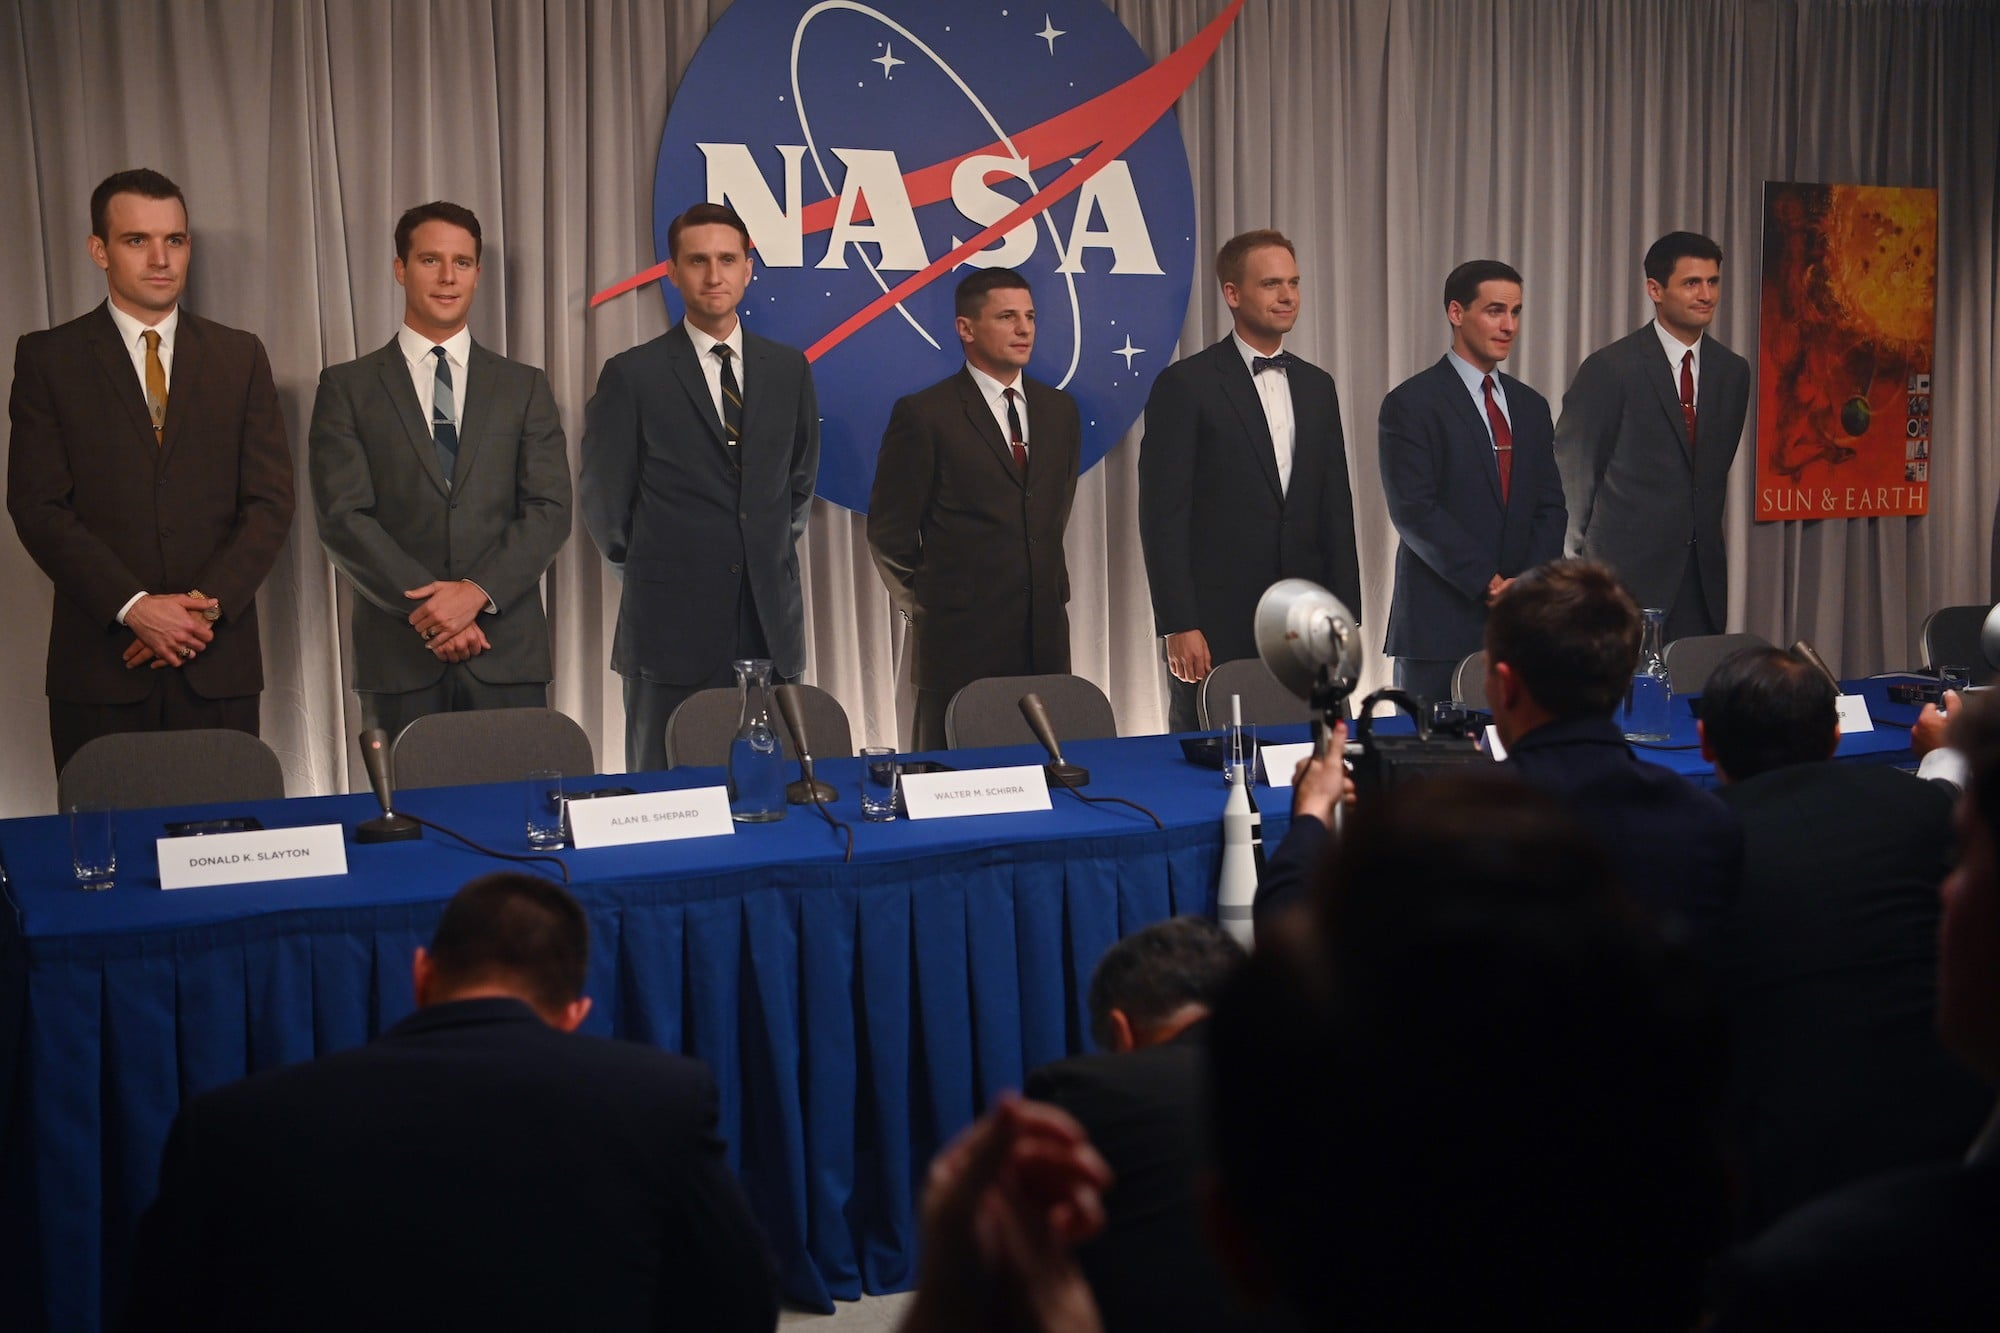 THE RIGHT STUFF, back, from left: Micah Stock as Deke Slayton, Jake McDorman as Alan Shepard, Aaron Staton as Wally Schirra, Michael Trotter as Gus Grissom, Patrick J. Adams as John Glenn, Colin O'Donoghue as Gordon Cooper, James Lafferty as Scott Carpenter, Sierra Hotel, (Season 1, ep. 101, aired Oct. 9, 2020). photo: National Geographic/Gene Page / Disney+ / Courtesy Everett Collection